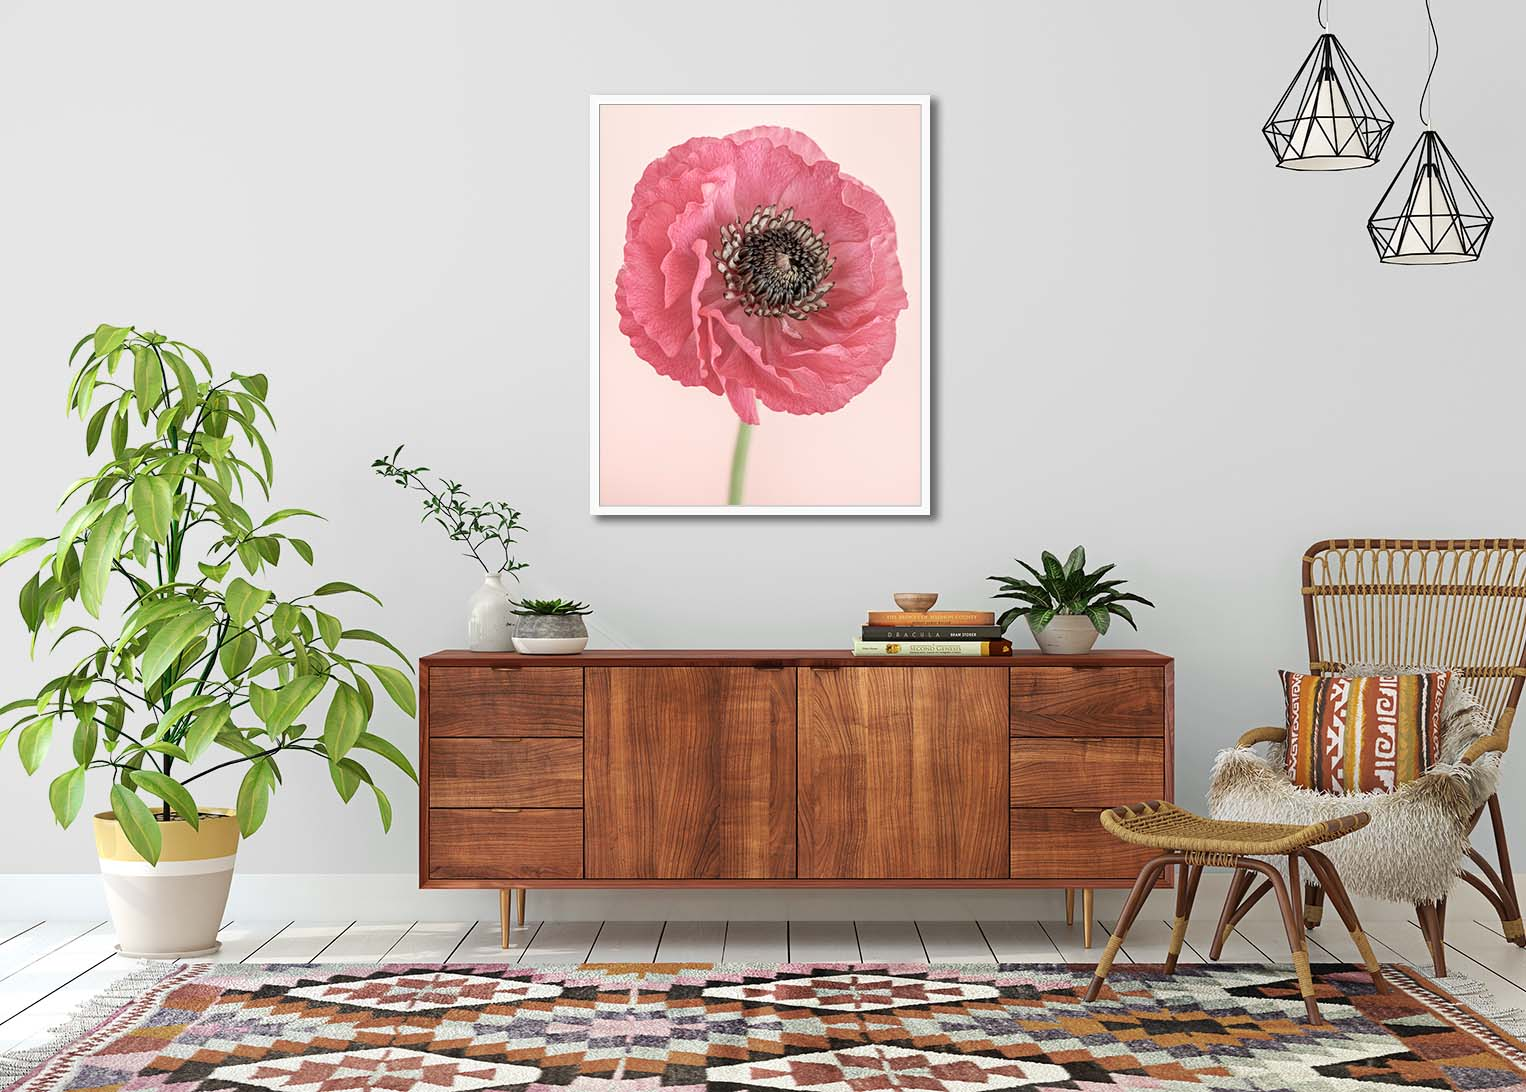 Pink Ranunculus I. Limited edition botanical print by fine art photographer Paul Coghlin.